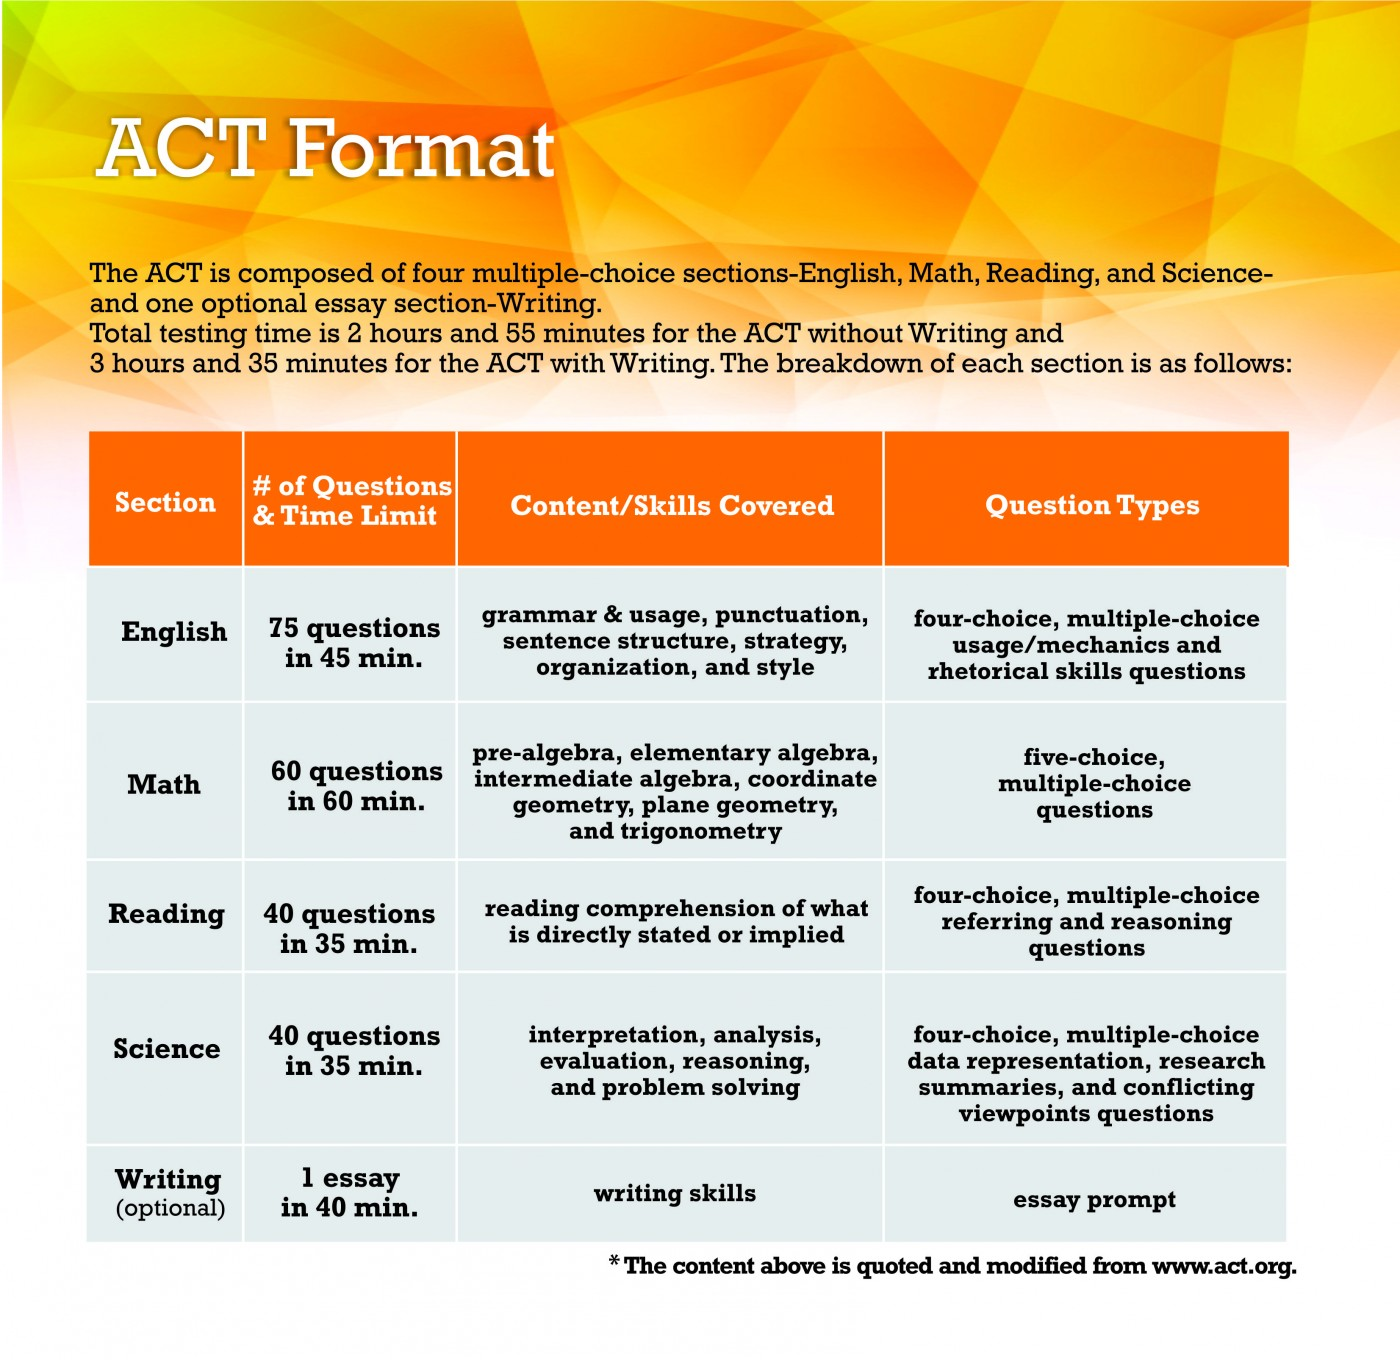 009 Act Format Essay Fearsome Scoring Rubric Topics Writing 1400